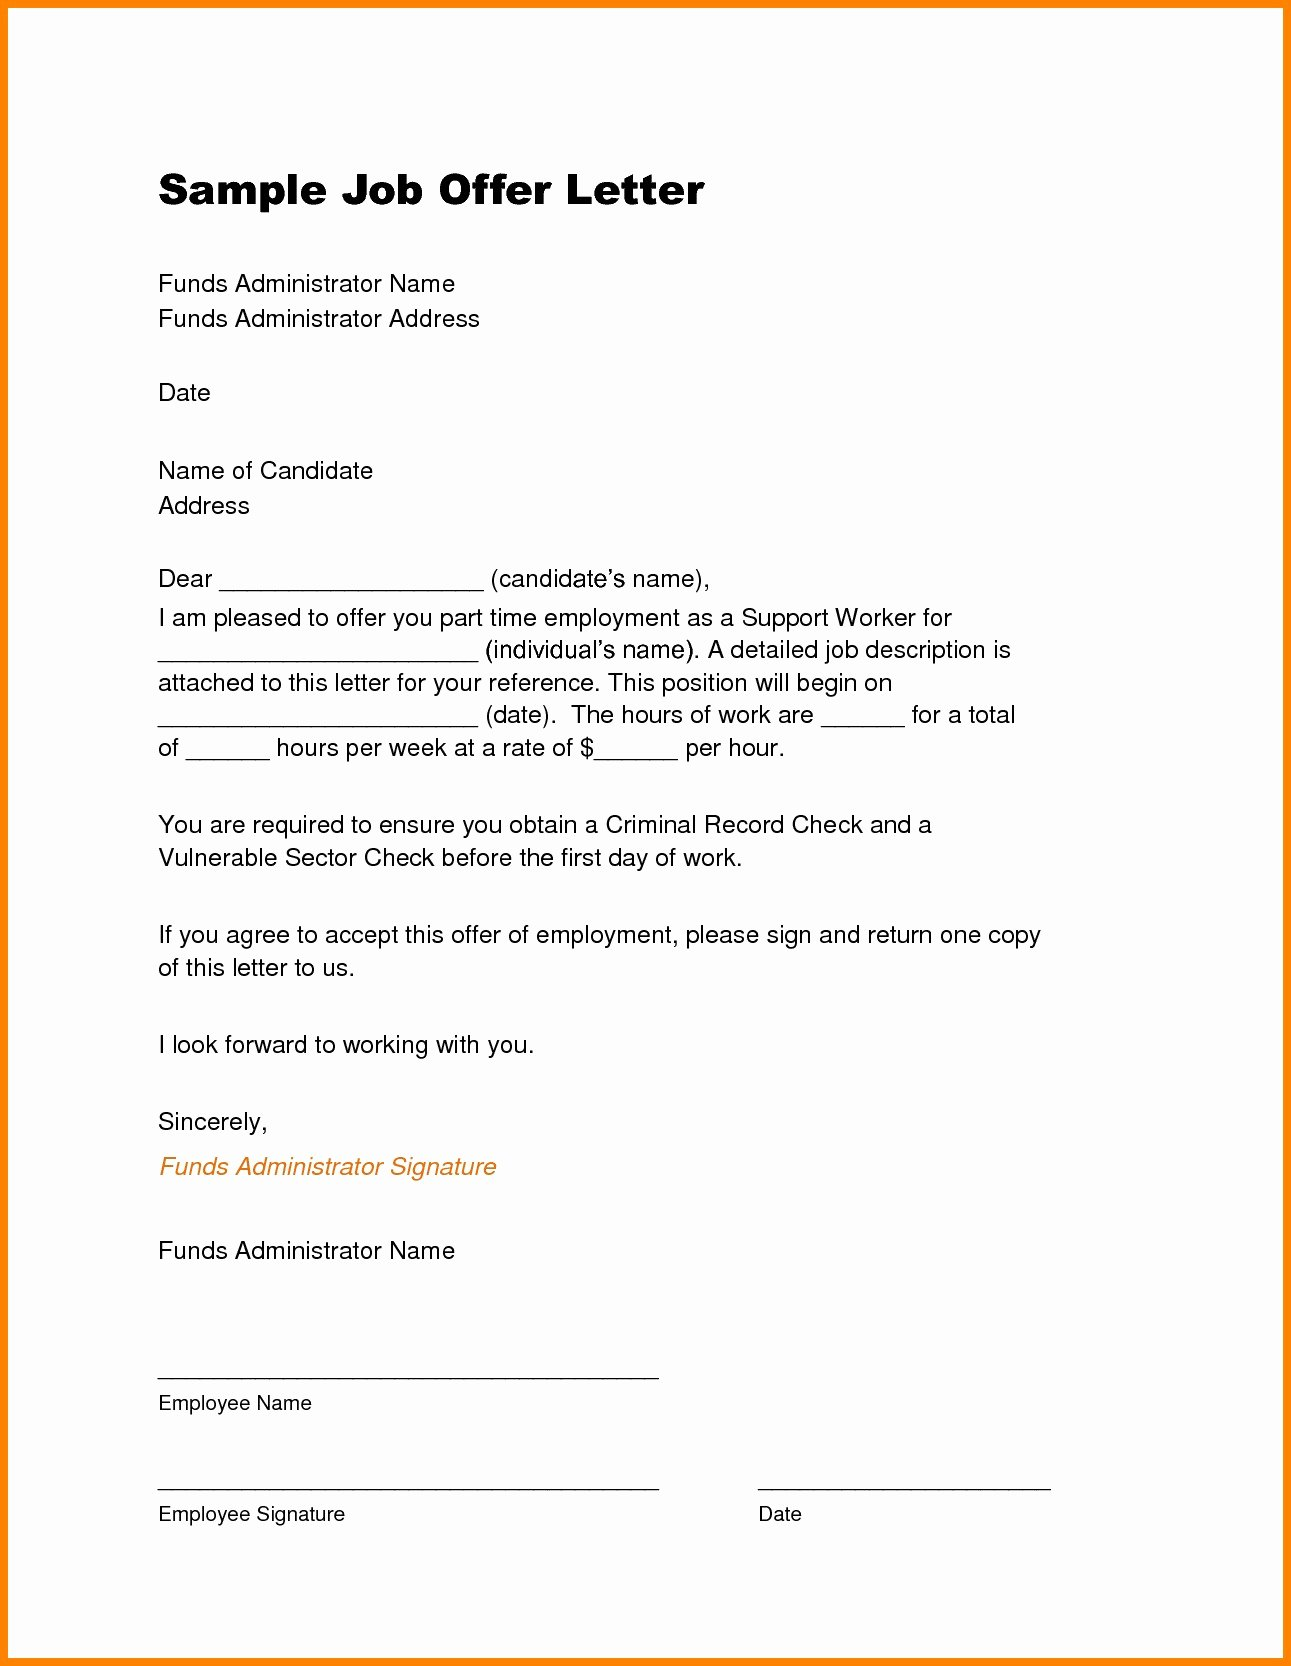 Job Offer Letter Template Doc New Job Fer Letter Template Pdf Examples